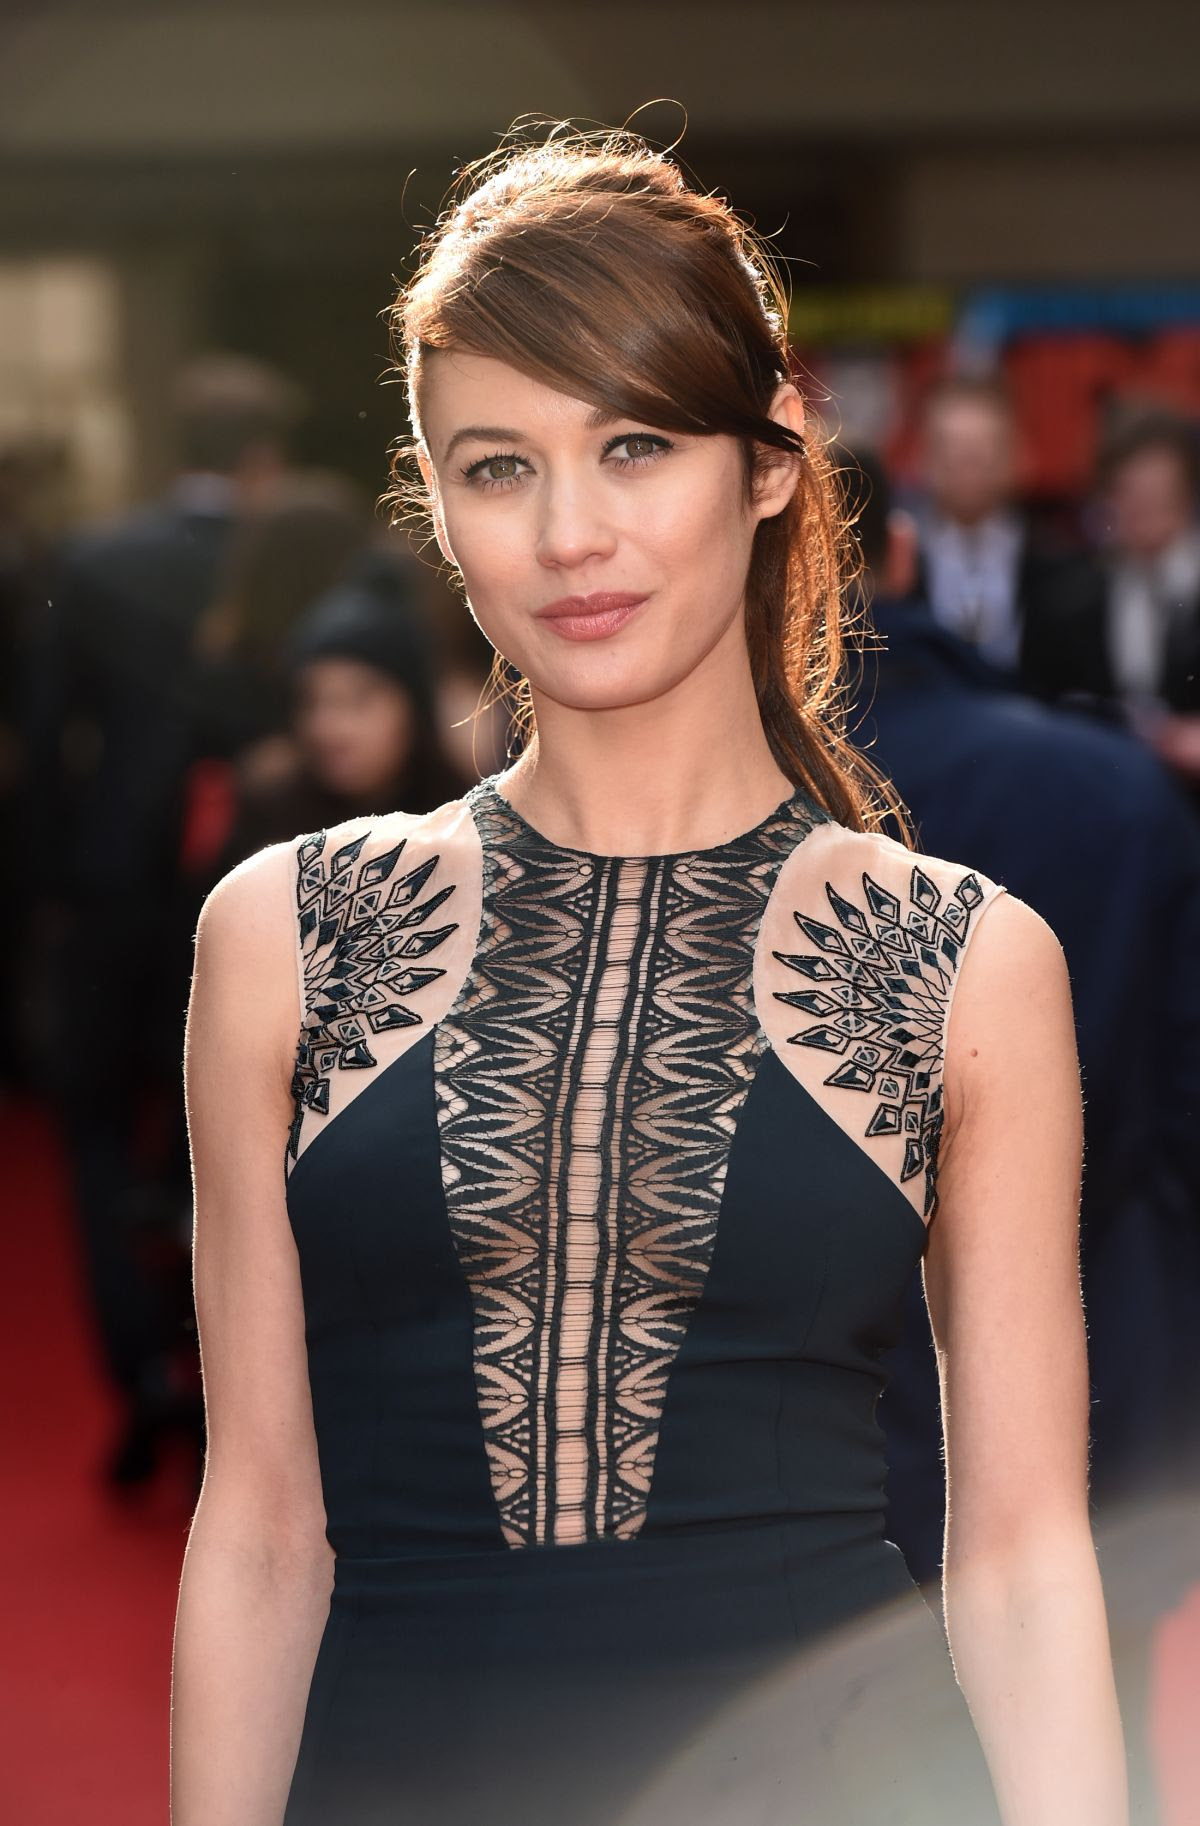 OLGA KURYLENKO at Jameson Empire Awards 2015 in London